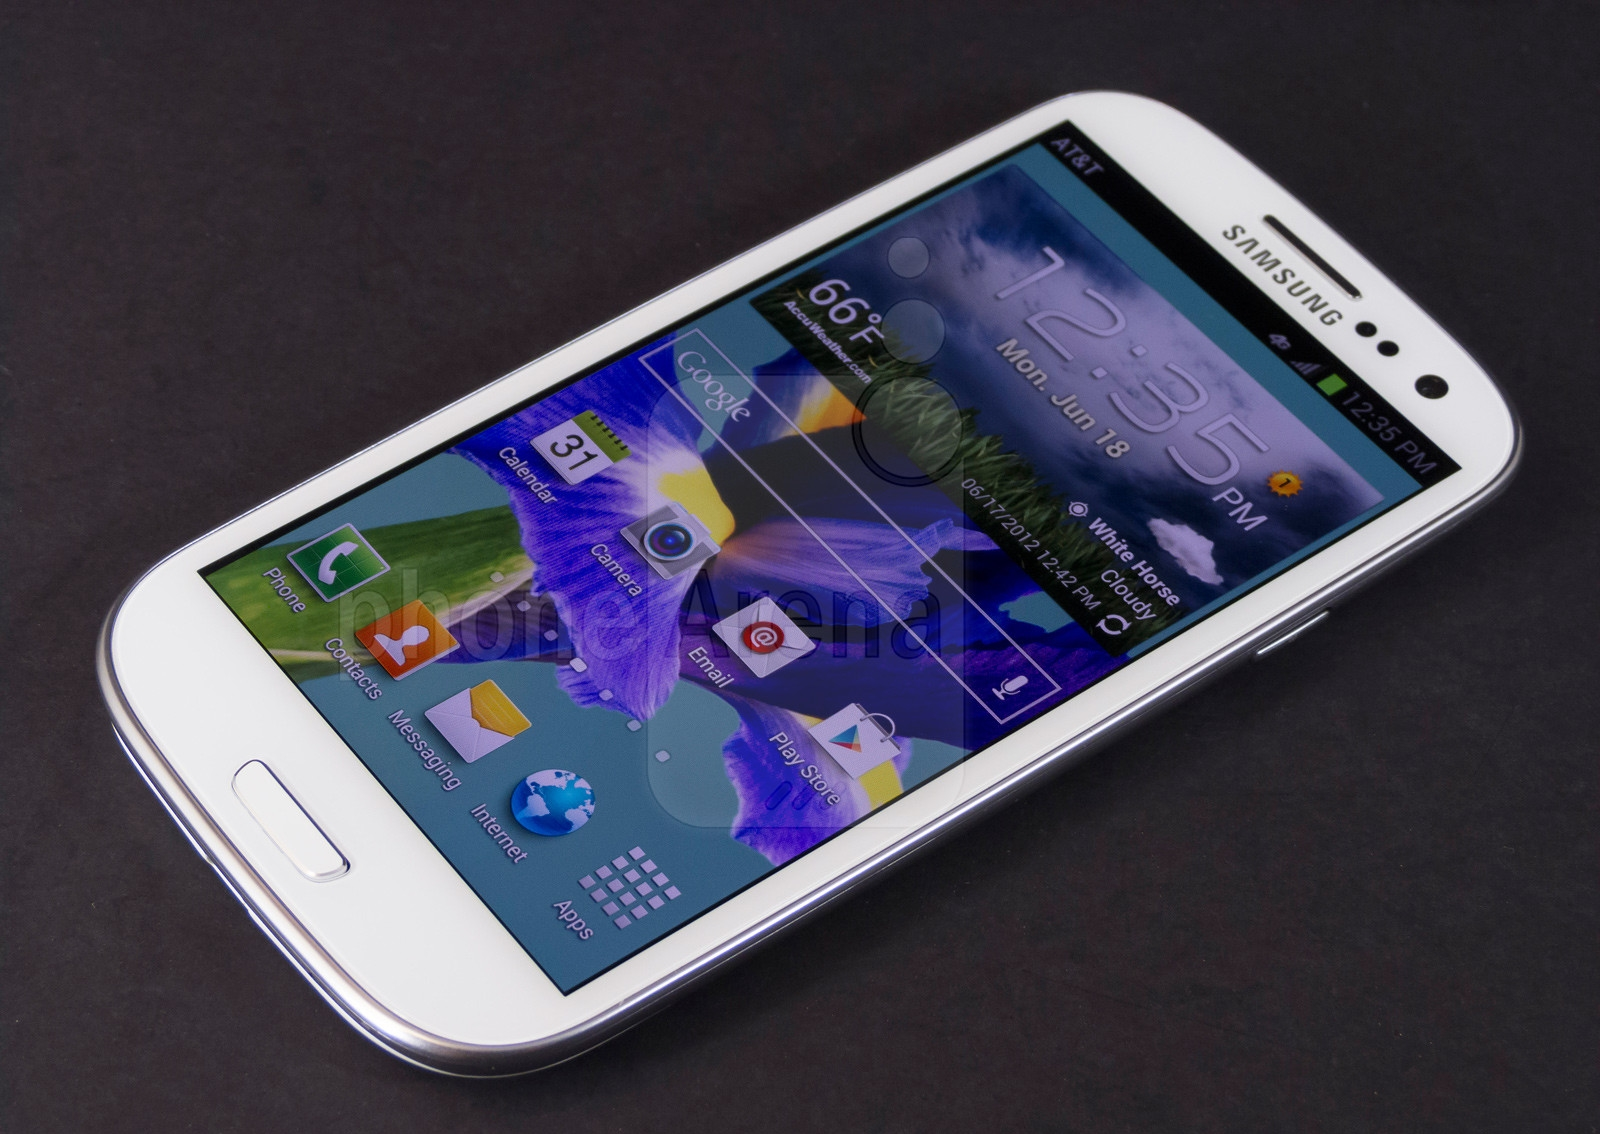 Samsung Galaxy S4 Wallpaper 12: Online Wallpapers Shop: Samsung Galaxy S4 Pictures